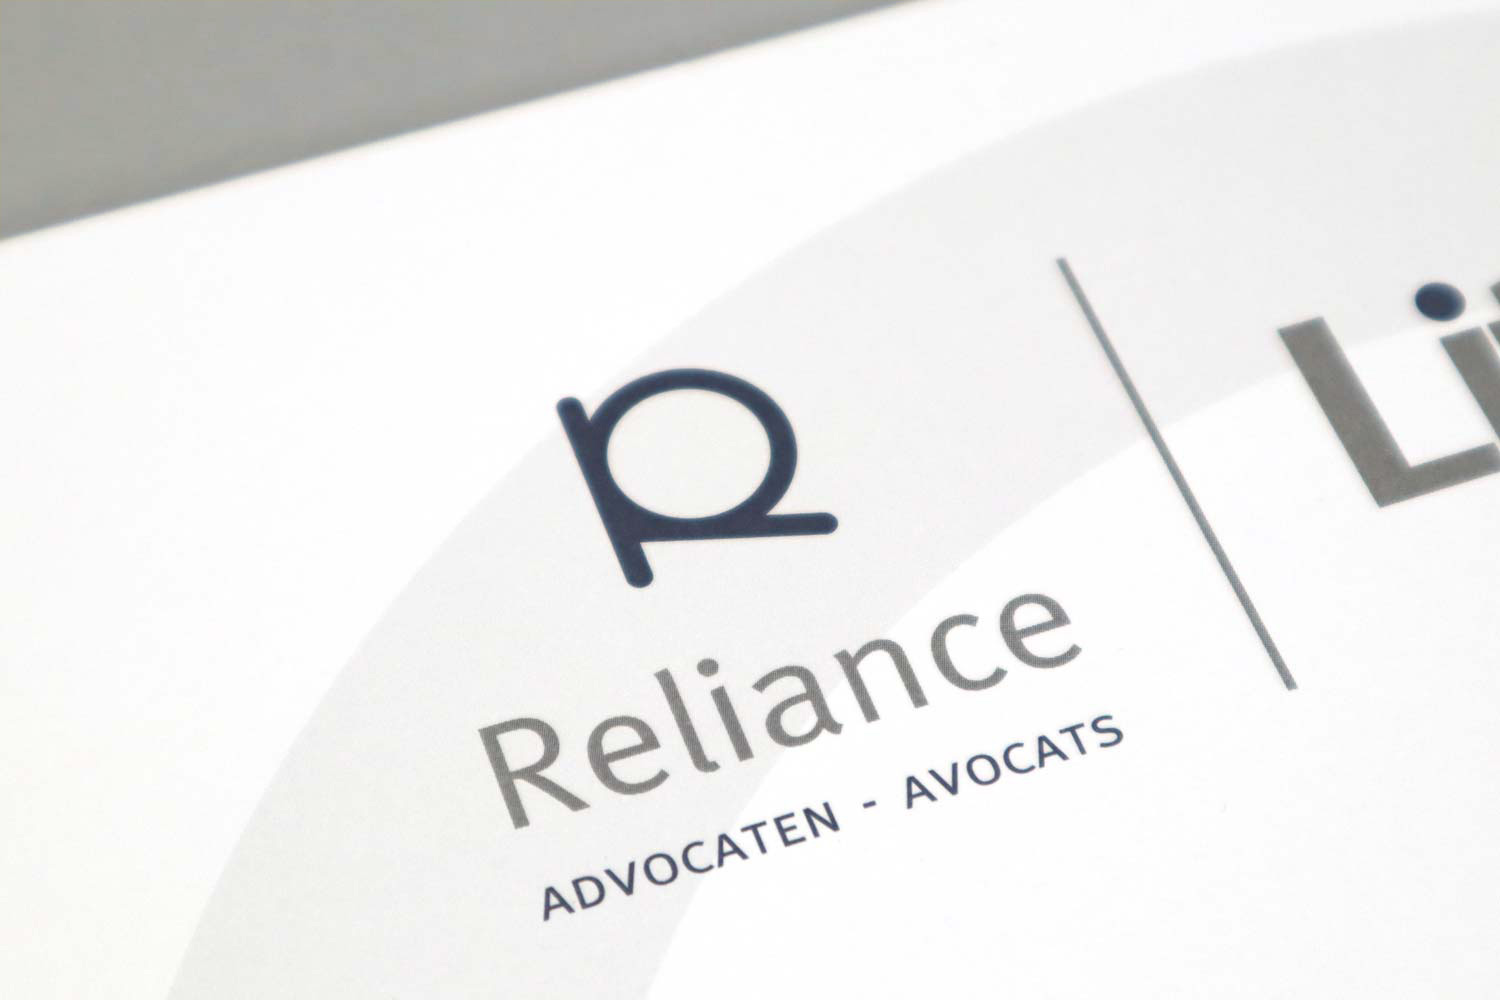 crabgraphic-Reliance-logo1